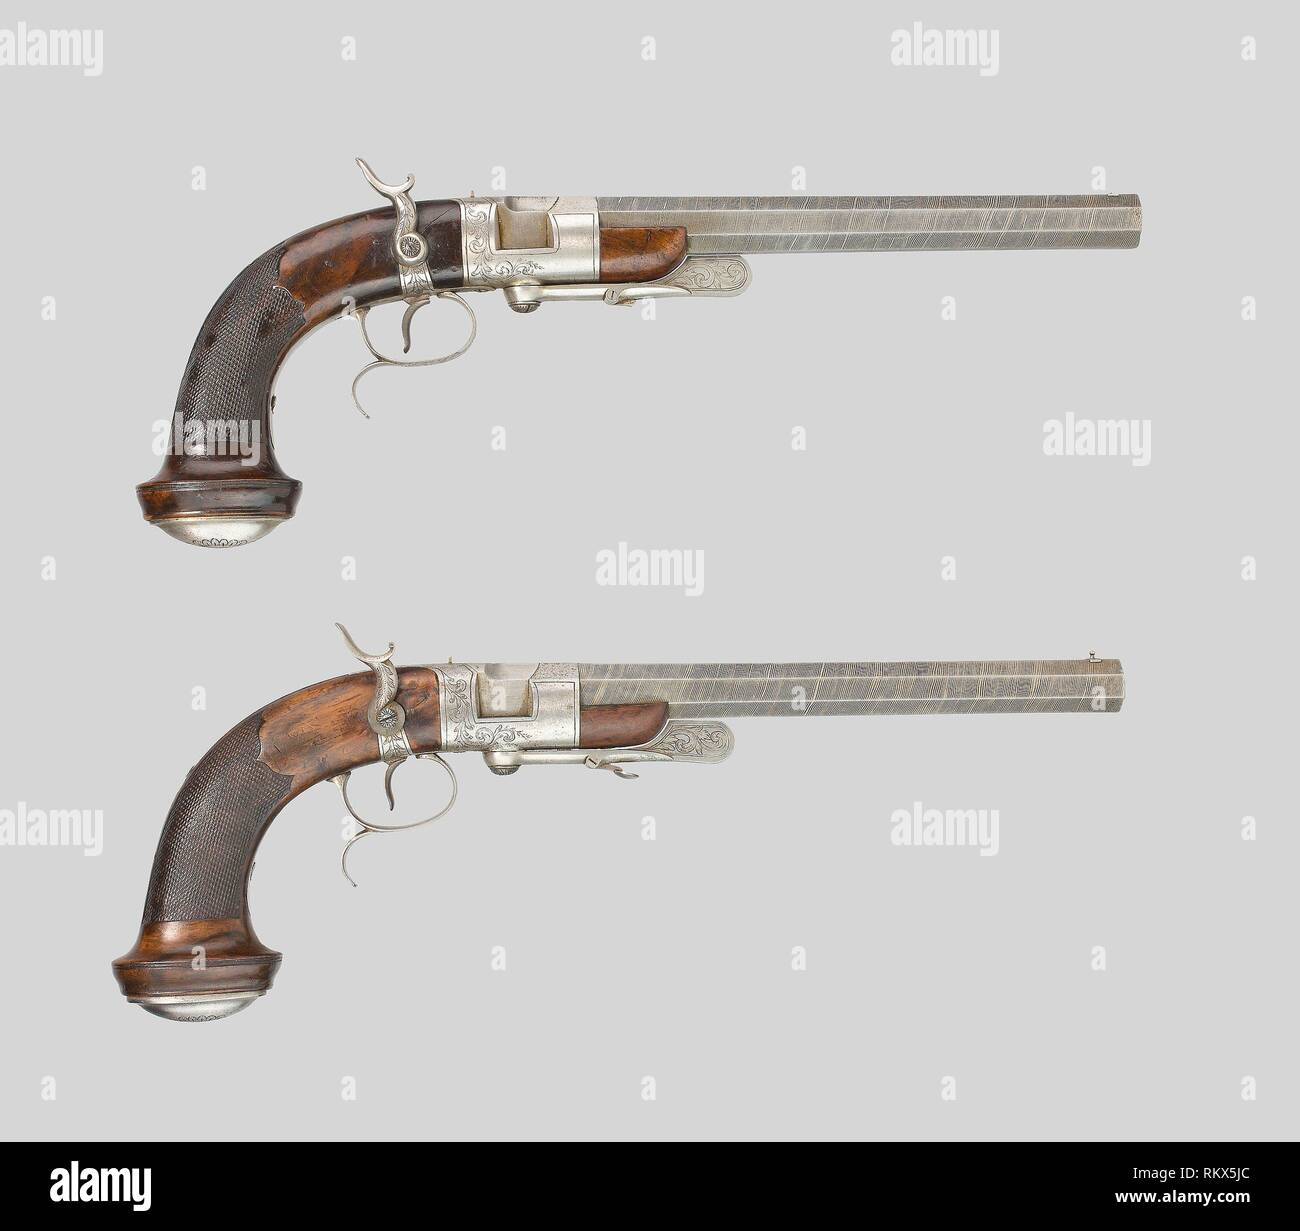 Pair of Breechloading Percussion Rifled Dueling Pistols